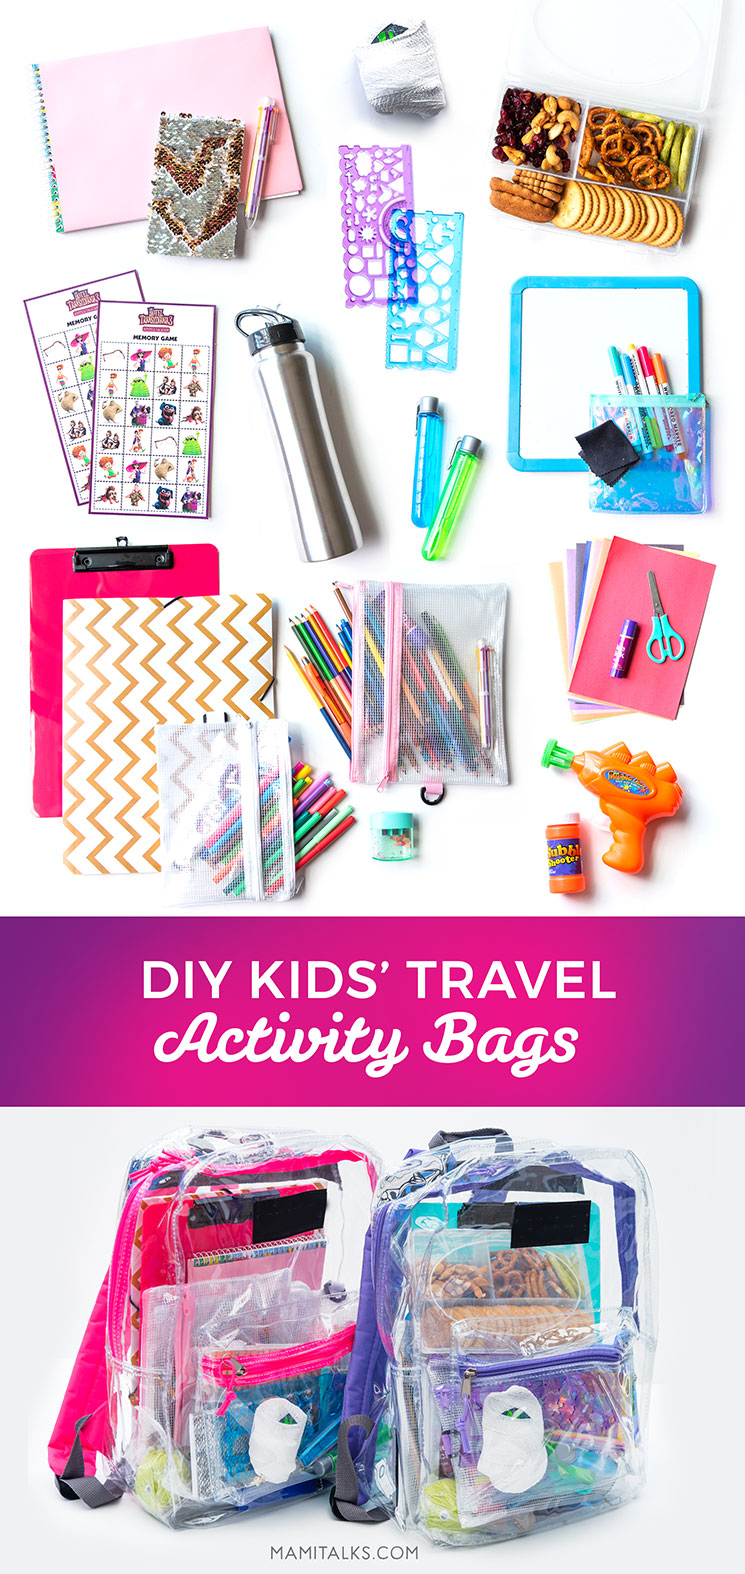 DIY KIDS' TRAVEL ACTIVITY BAG -MamiTalks.com